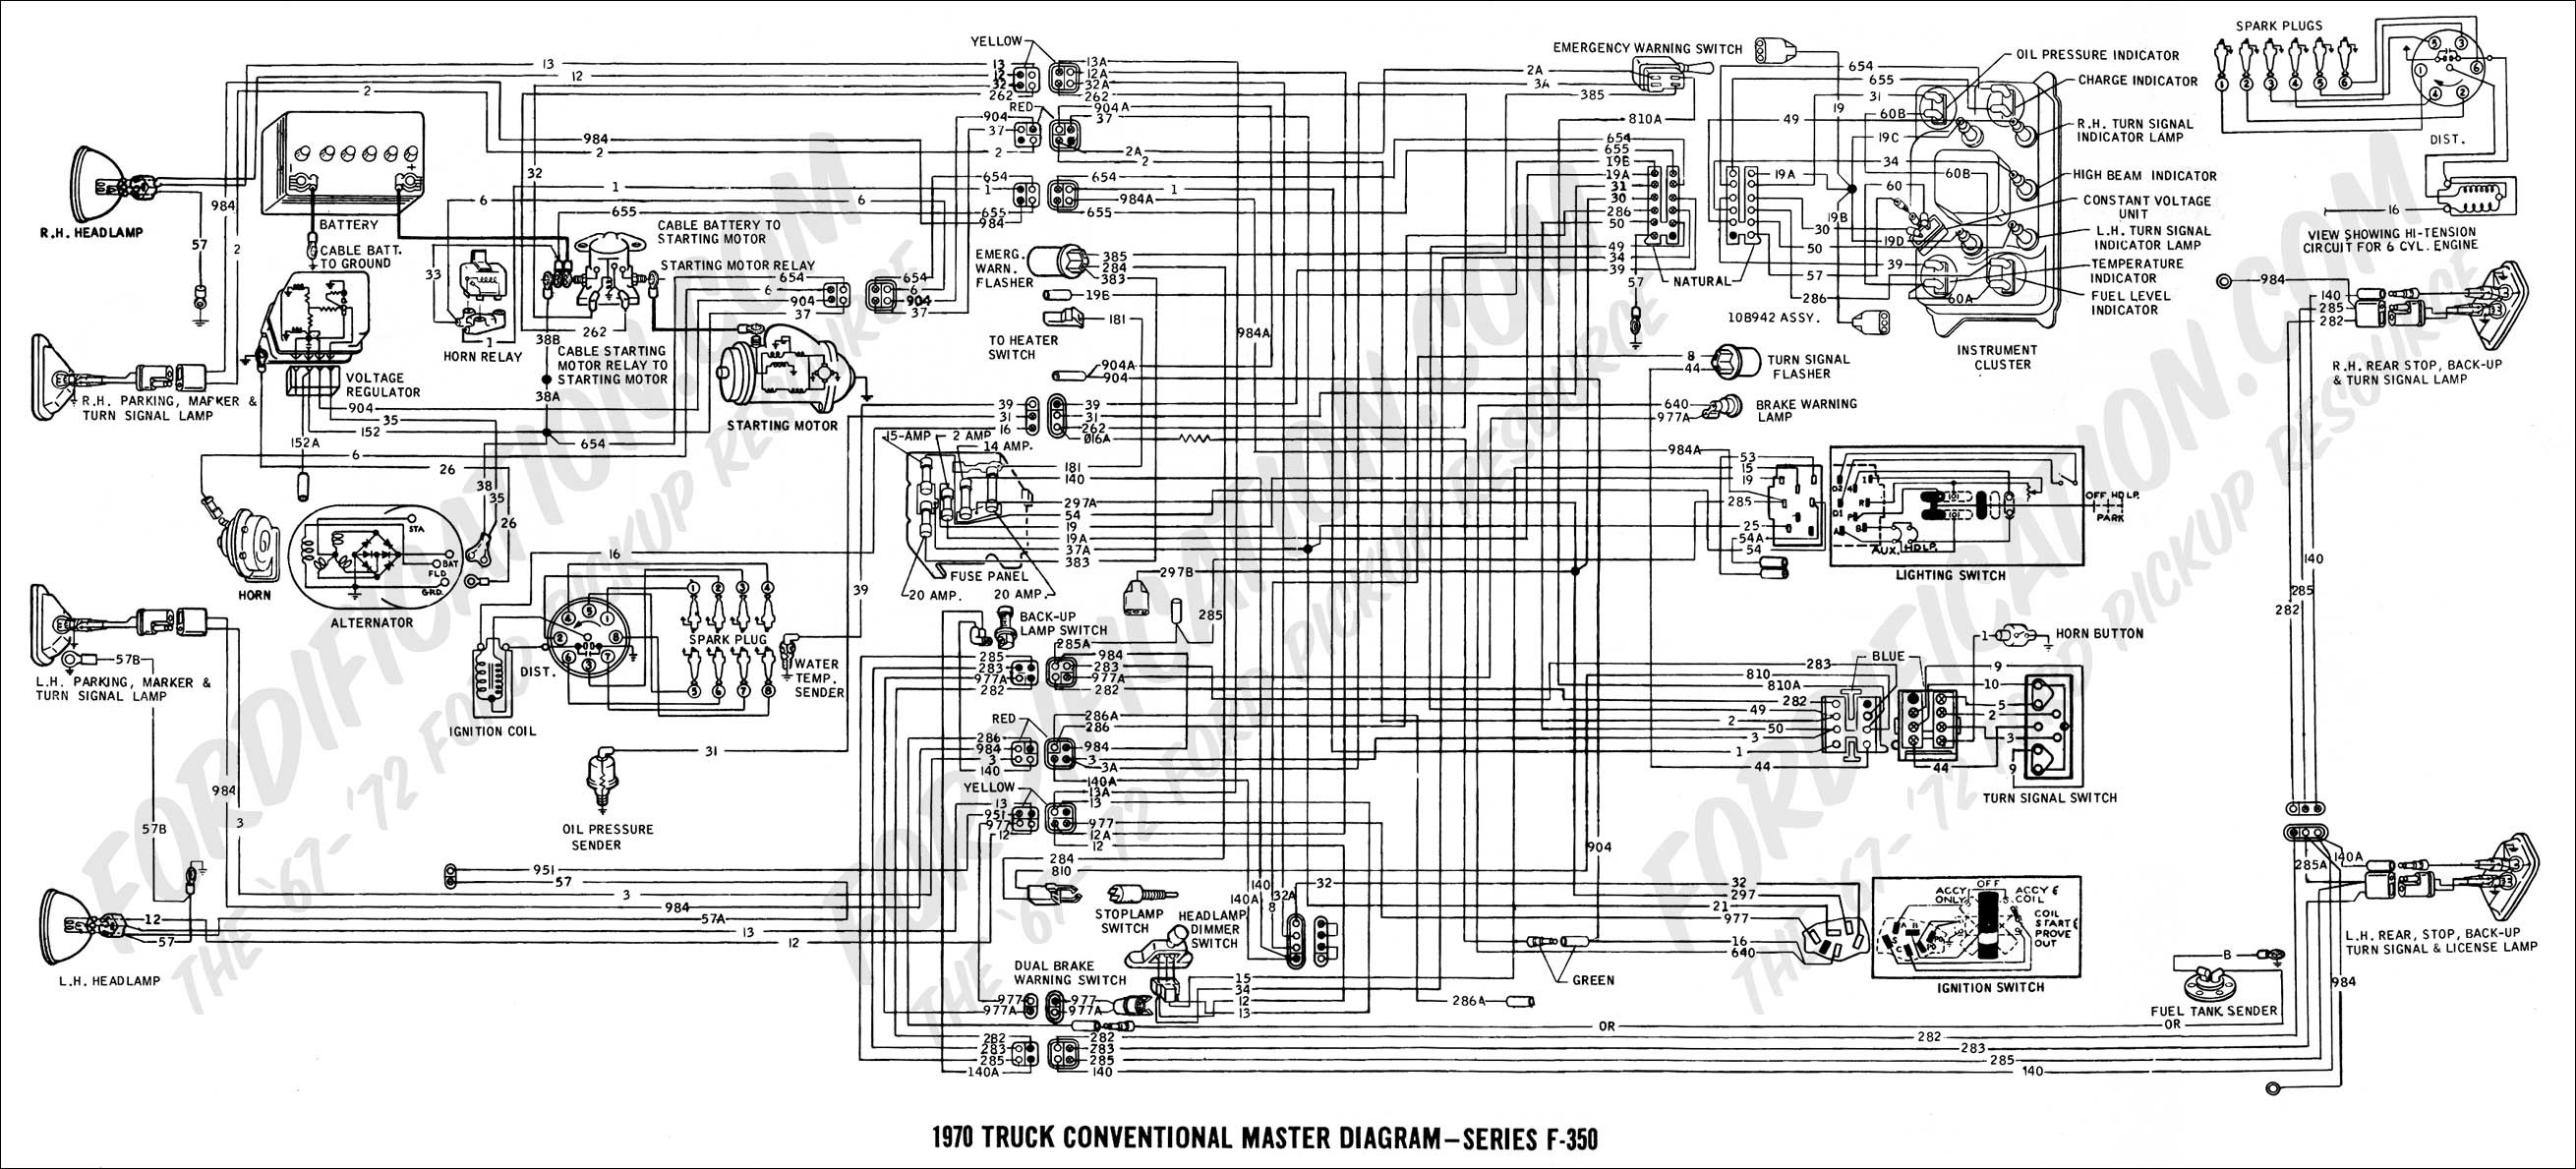 1998 ford Mustang Wiring Diagram to 2007 ford Mustang Wiring Diagram Wiring  Diagram Of 1998 ford